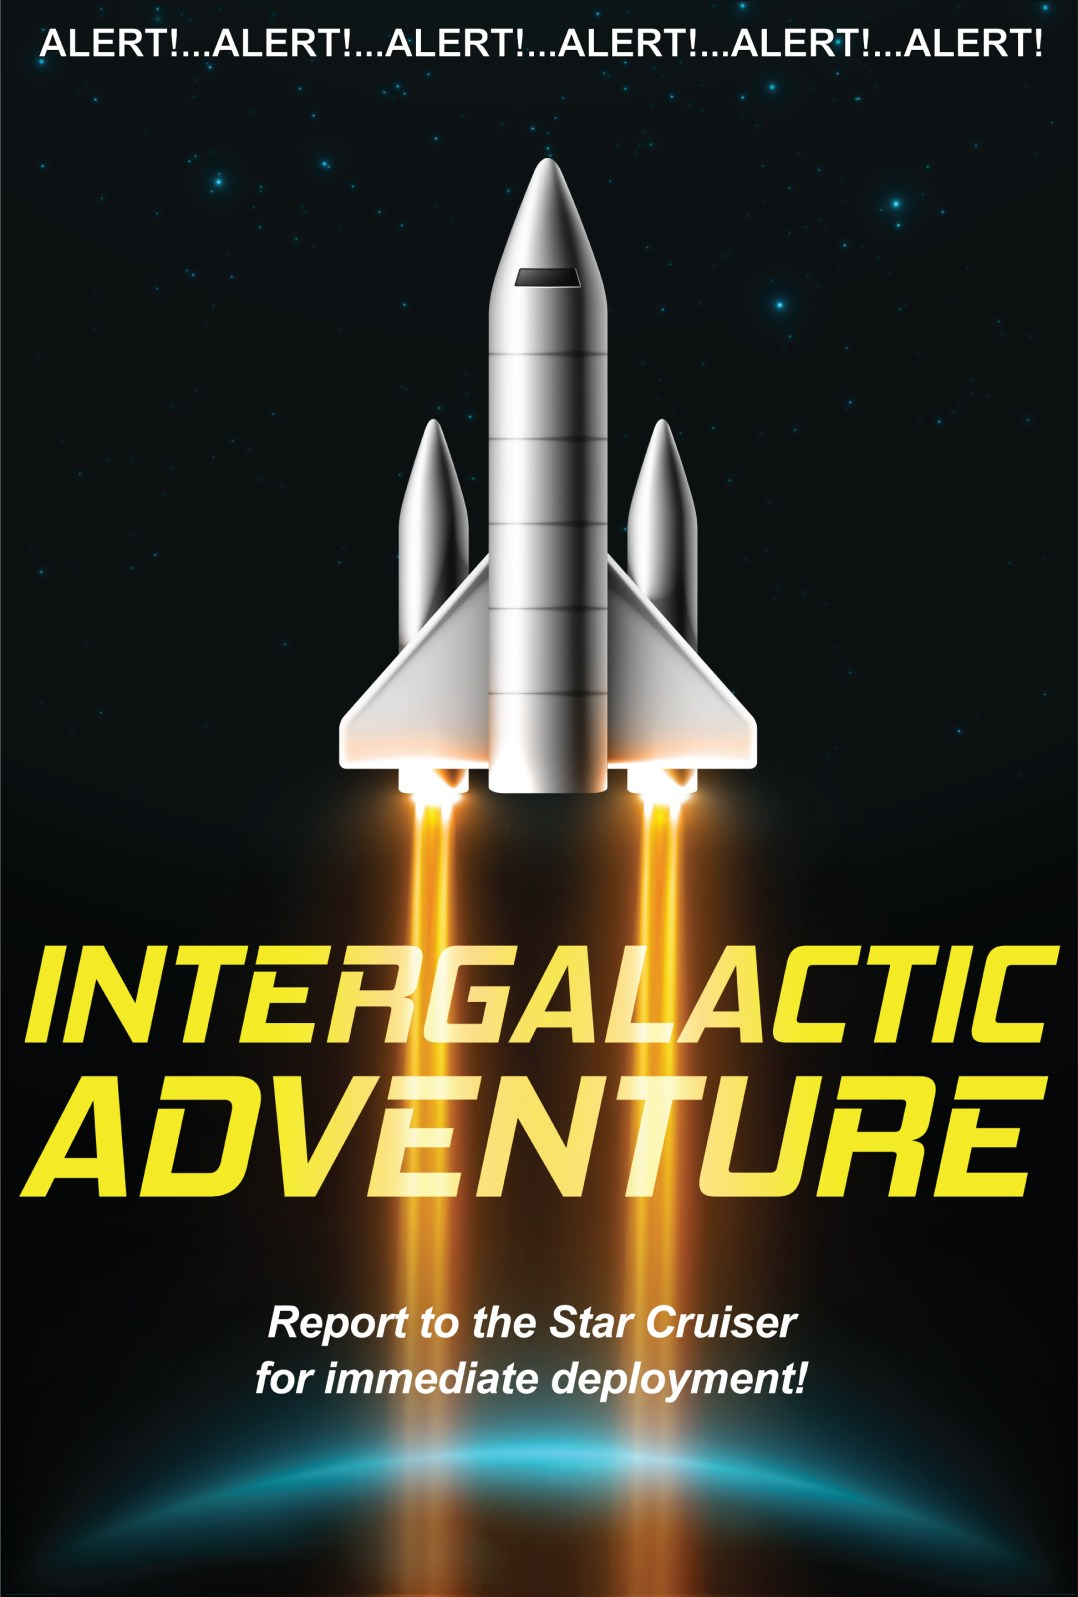 TBP-Program-Poster_0010_Intergalactic-Adventure